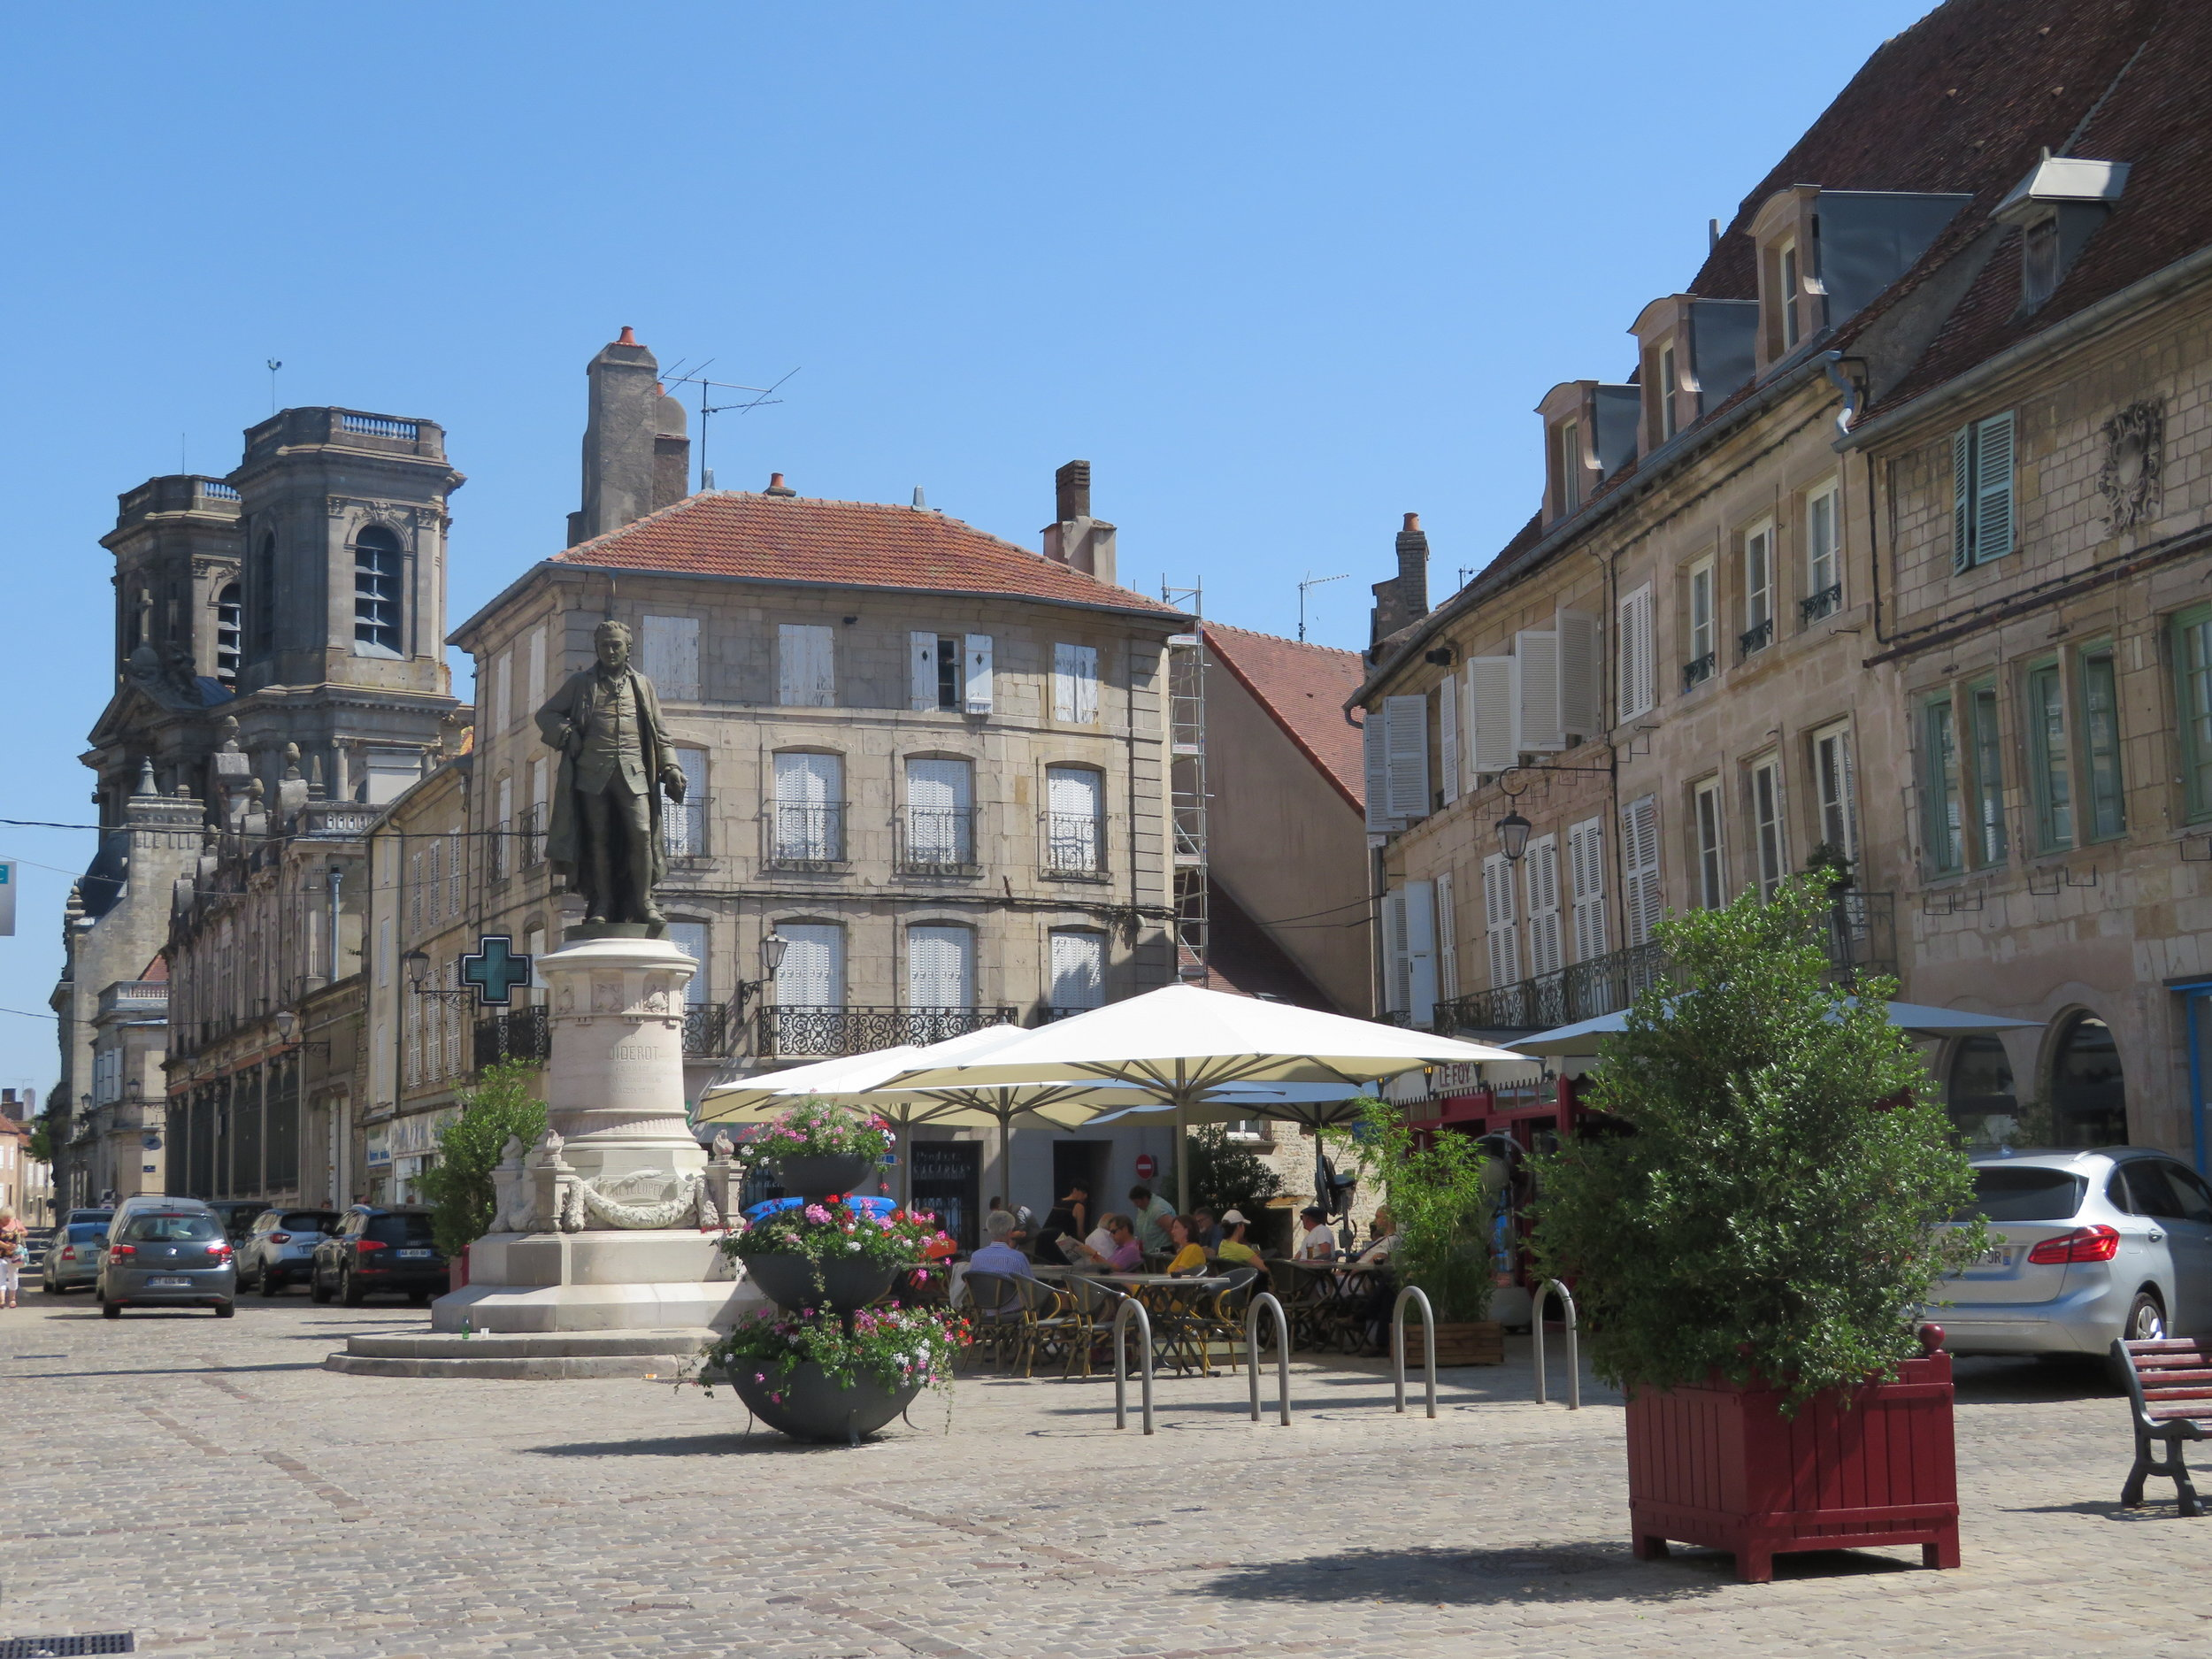 Place Diderot in the old city of Langres